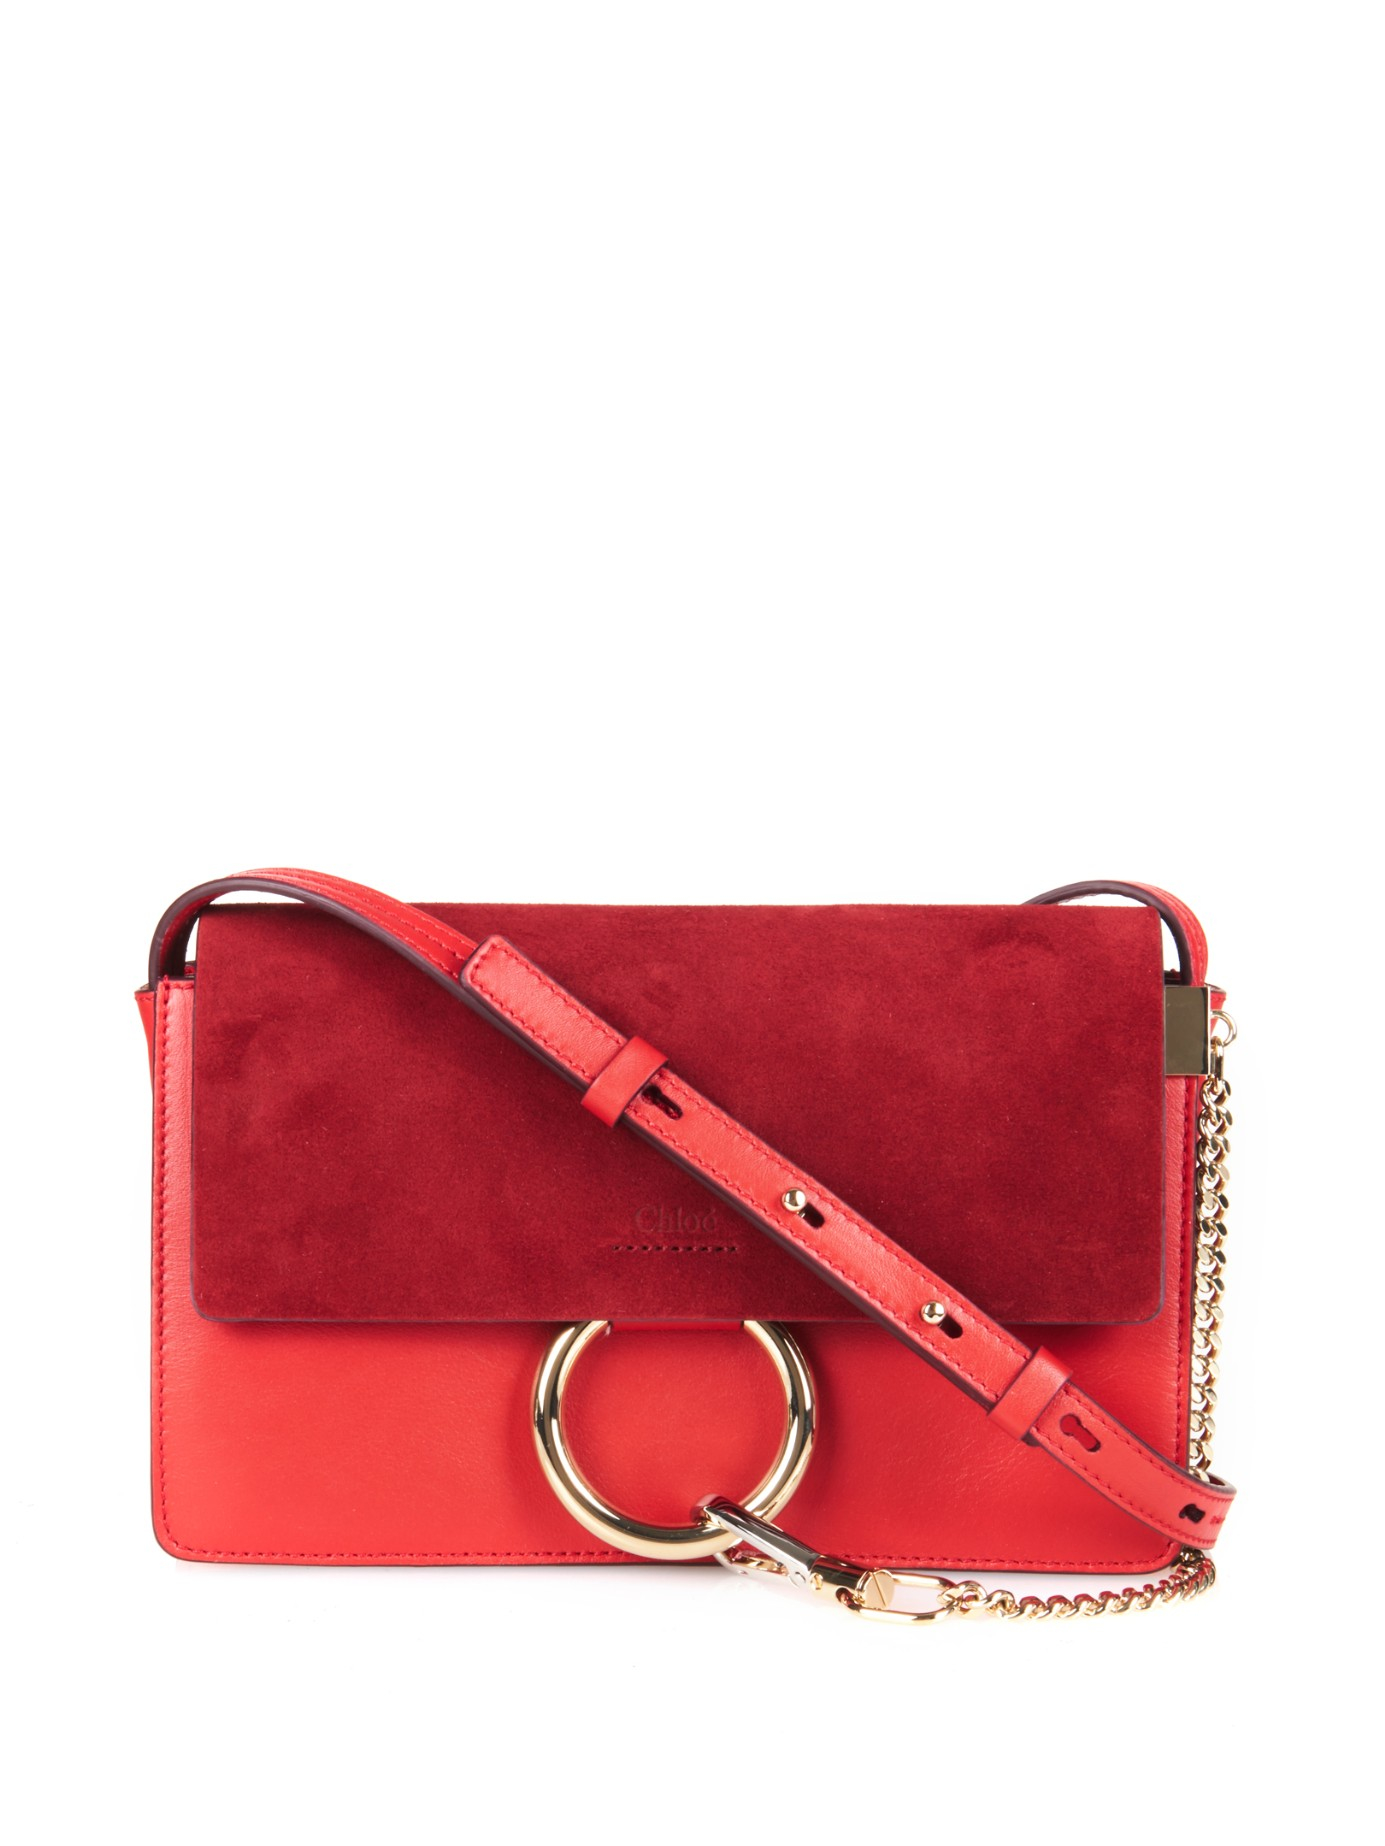 chlo faye leather and suede cross body bag in red lyst. Black Bedroom Furniture Sets. Home Design Ideas